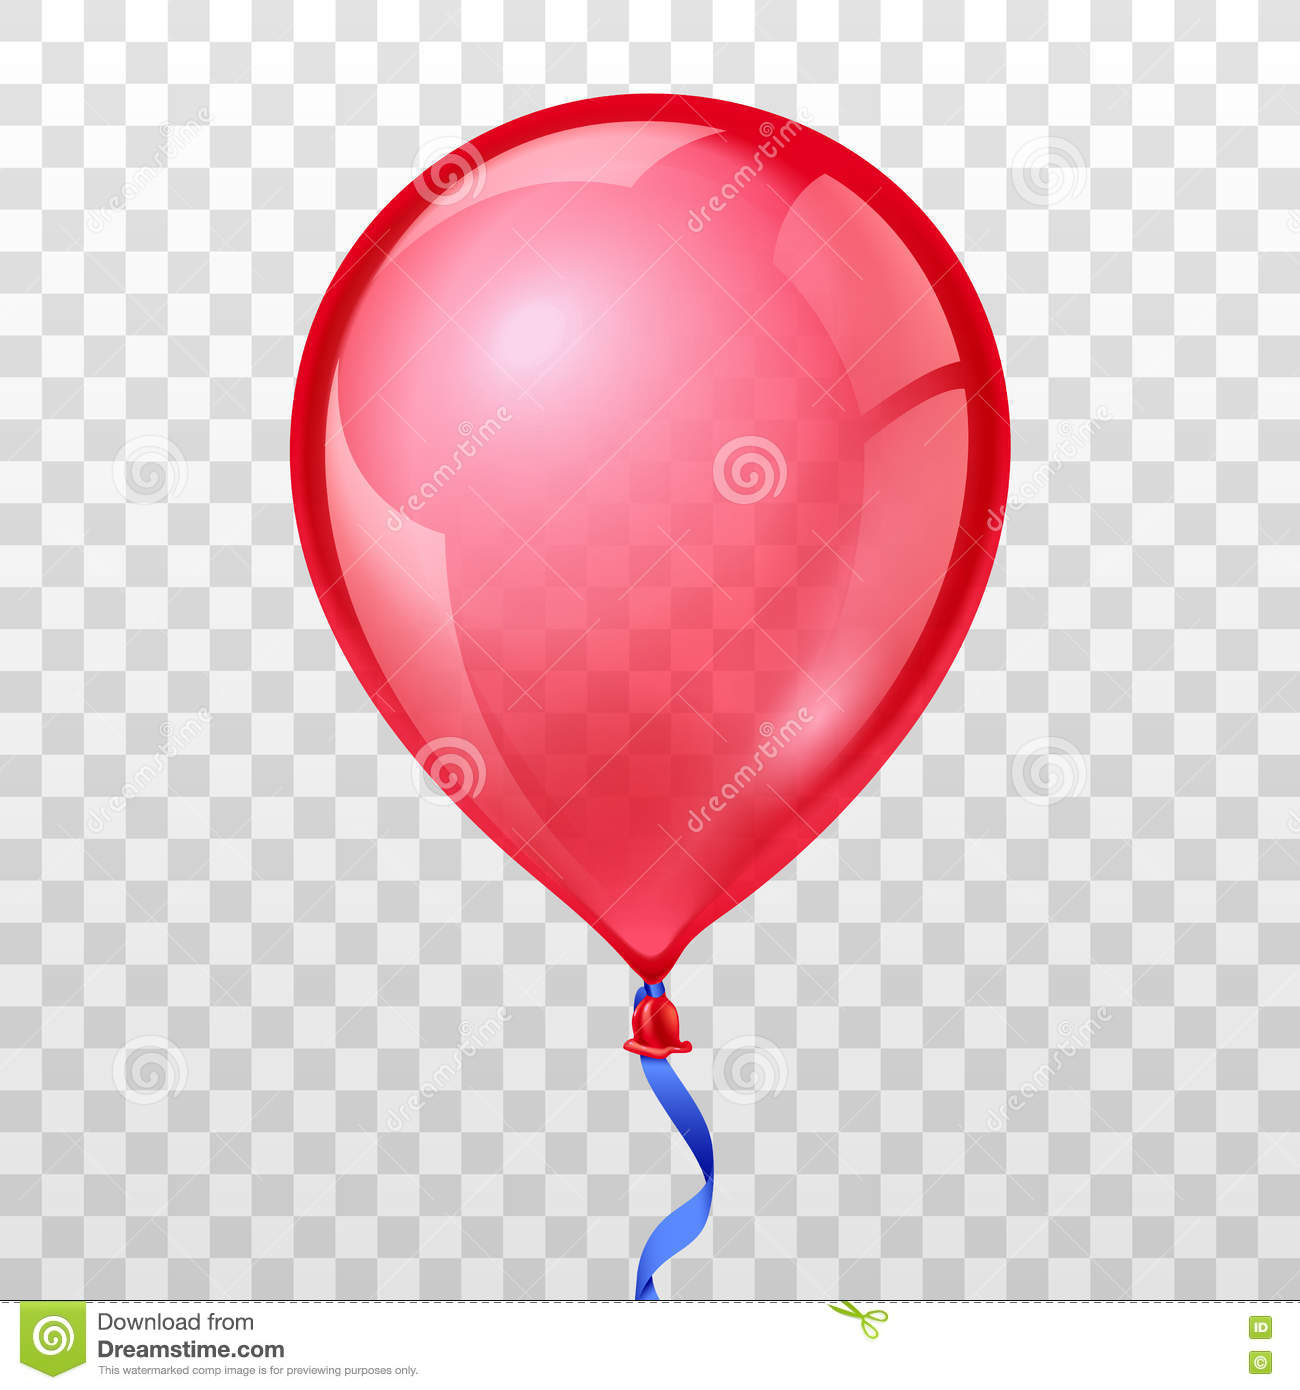 Realistic Red Balloon On Transparent Checkered Background.